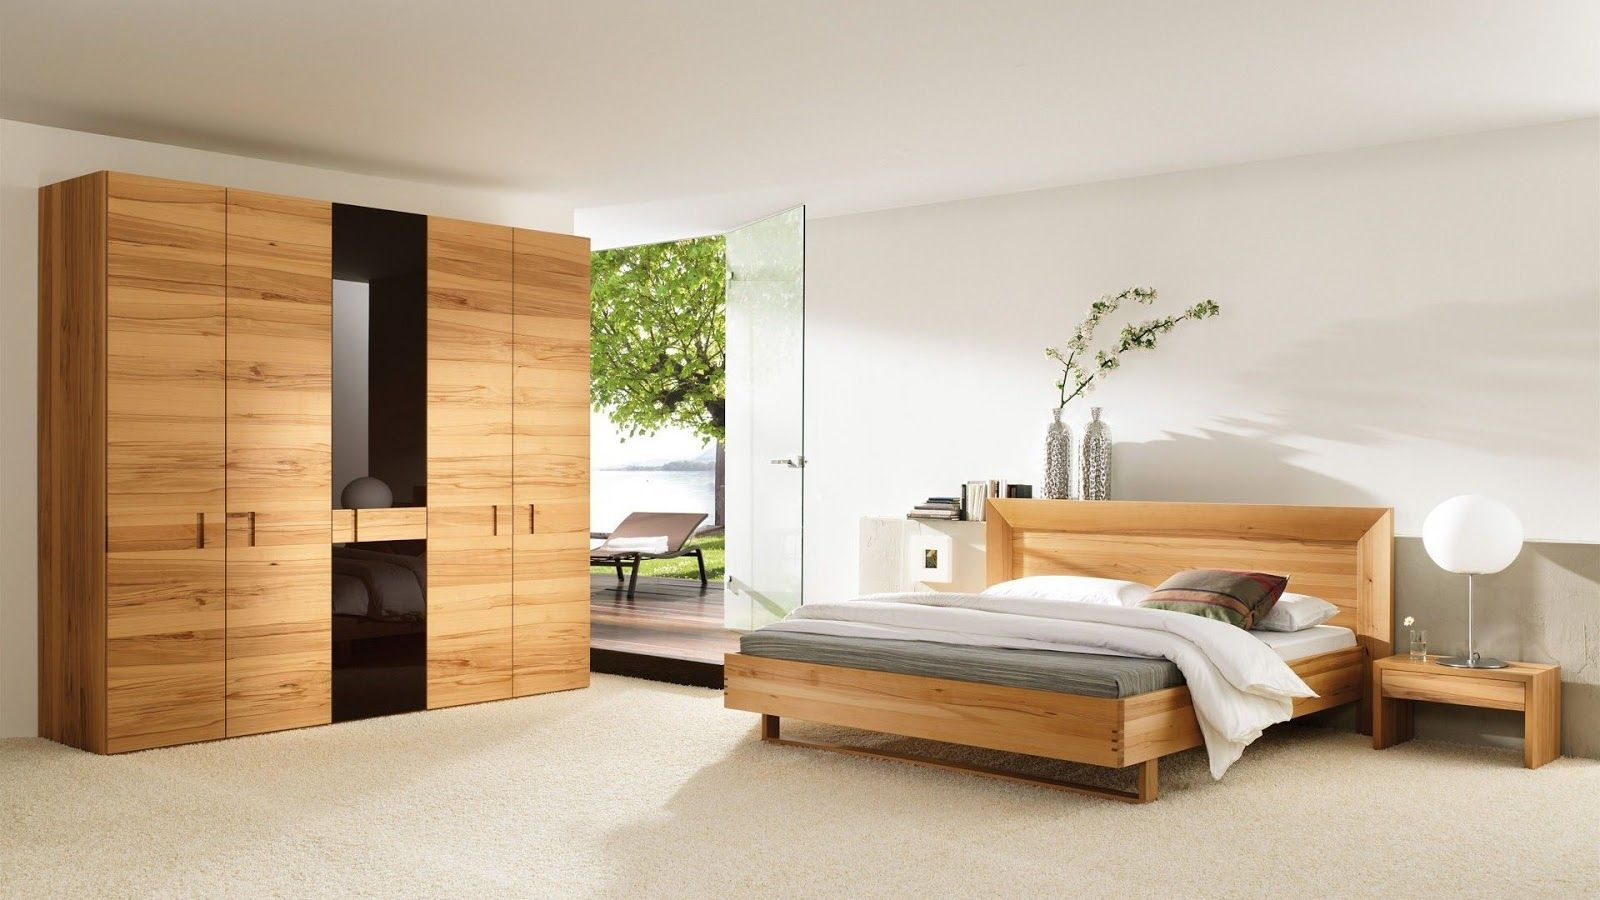 Interesting simple bedroom design ideas with nice wardrobe for Simplistic bedroom design